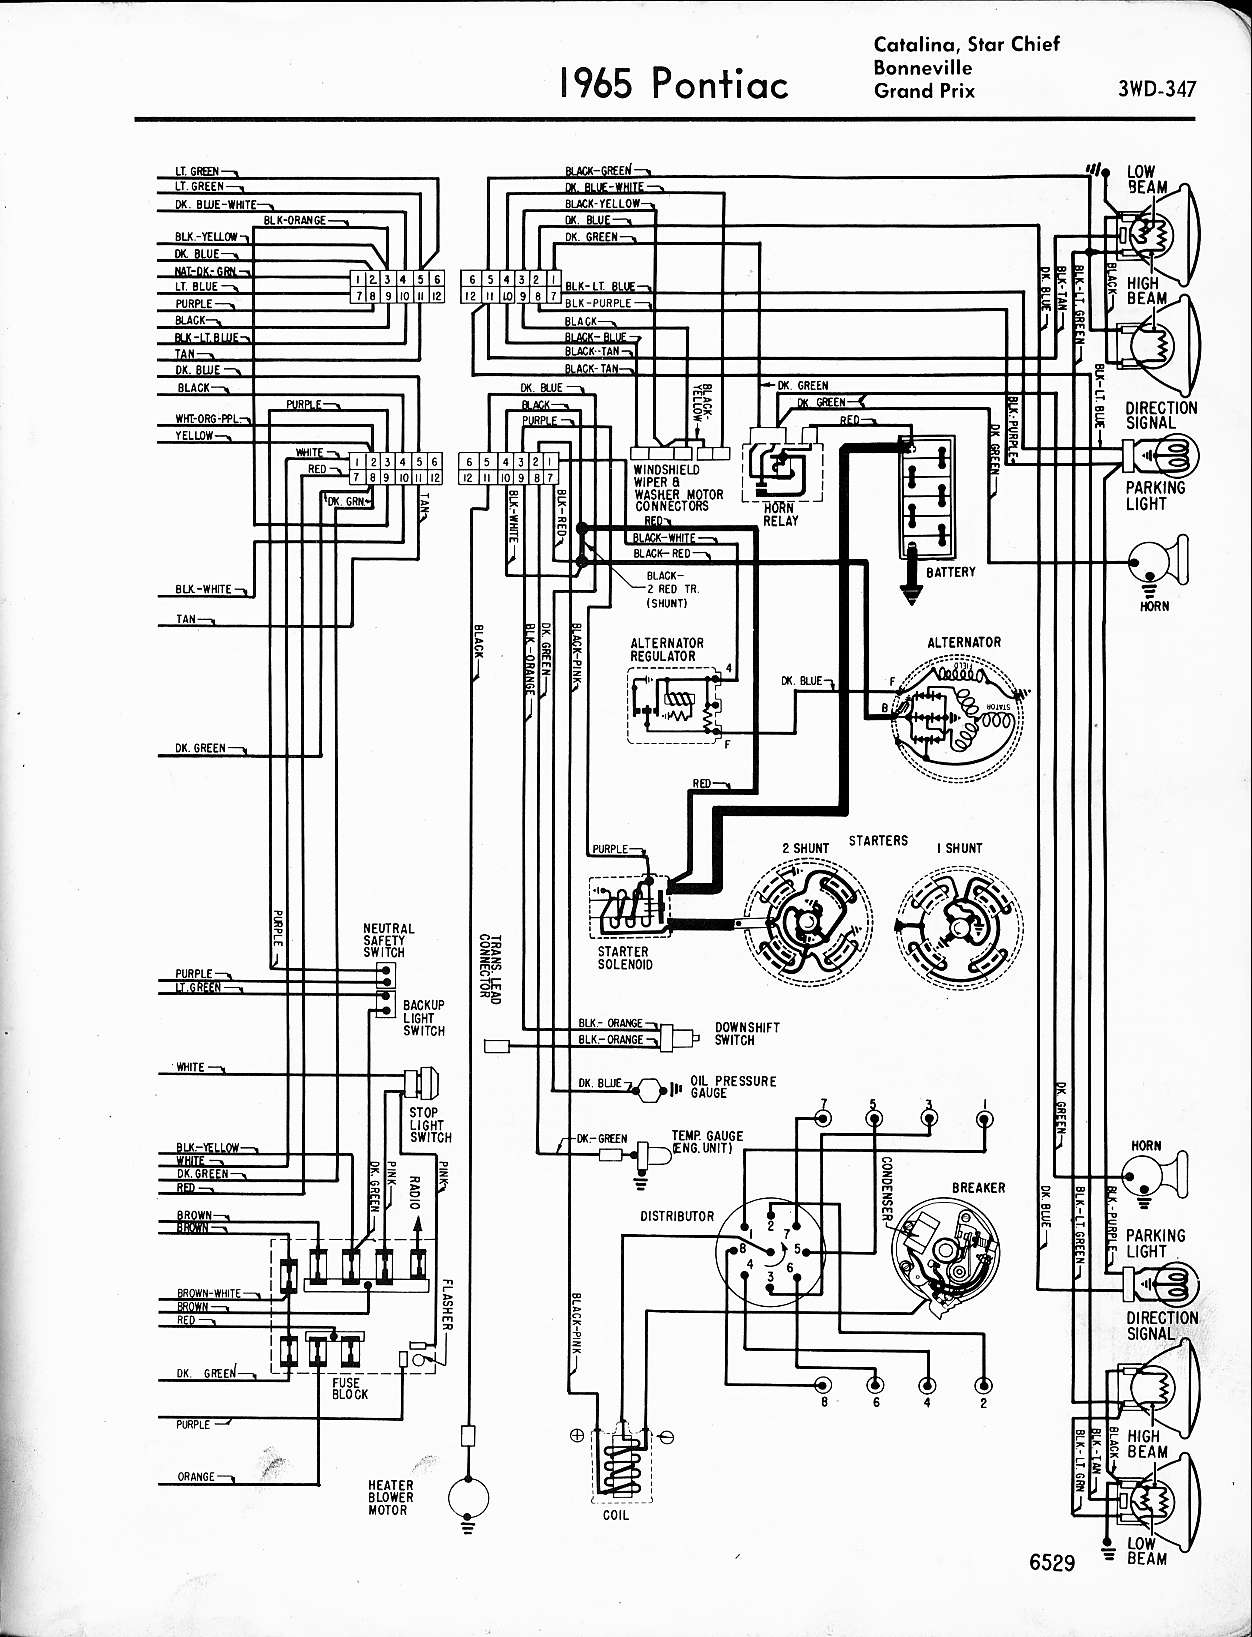 Wiring Diagram For Pontiac Bonneville Opinions About 1996 Acura Integra Fuse Box Free Download 1957 1965 Rh Oldcarmanualproject Com Radio 2003